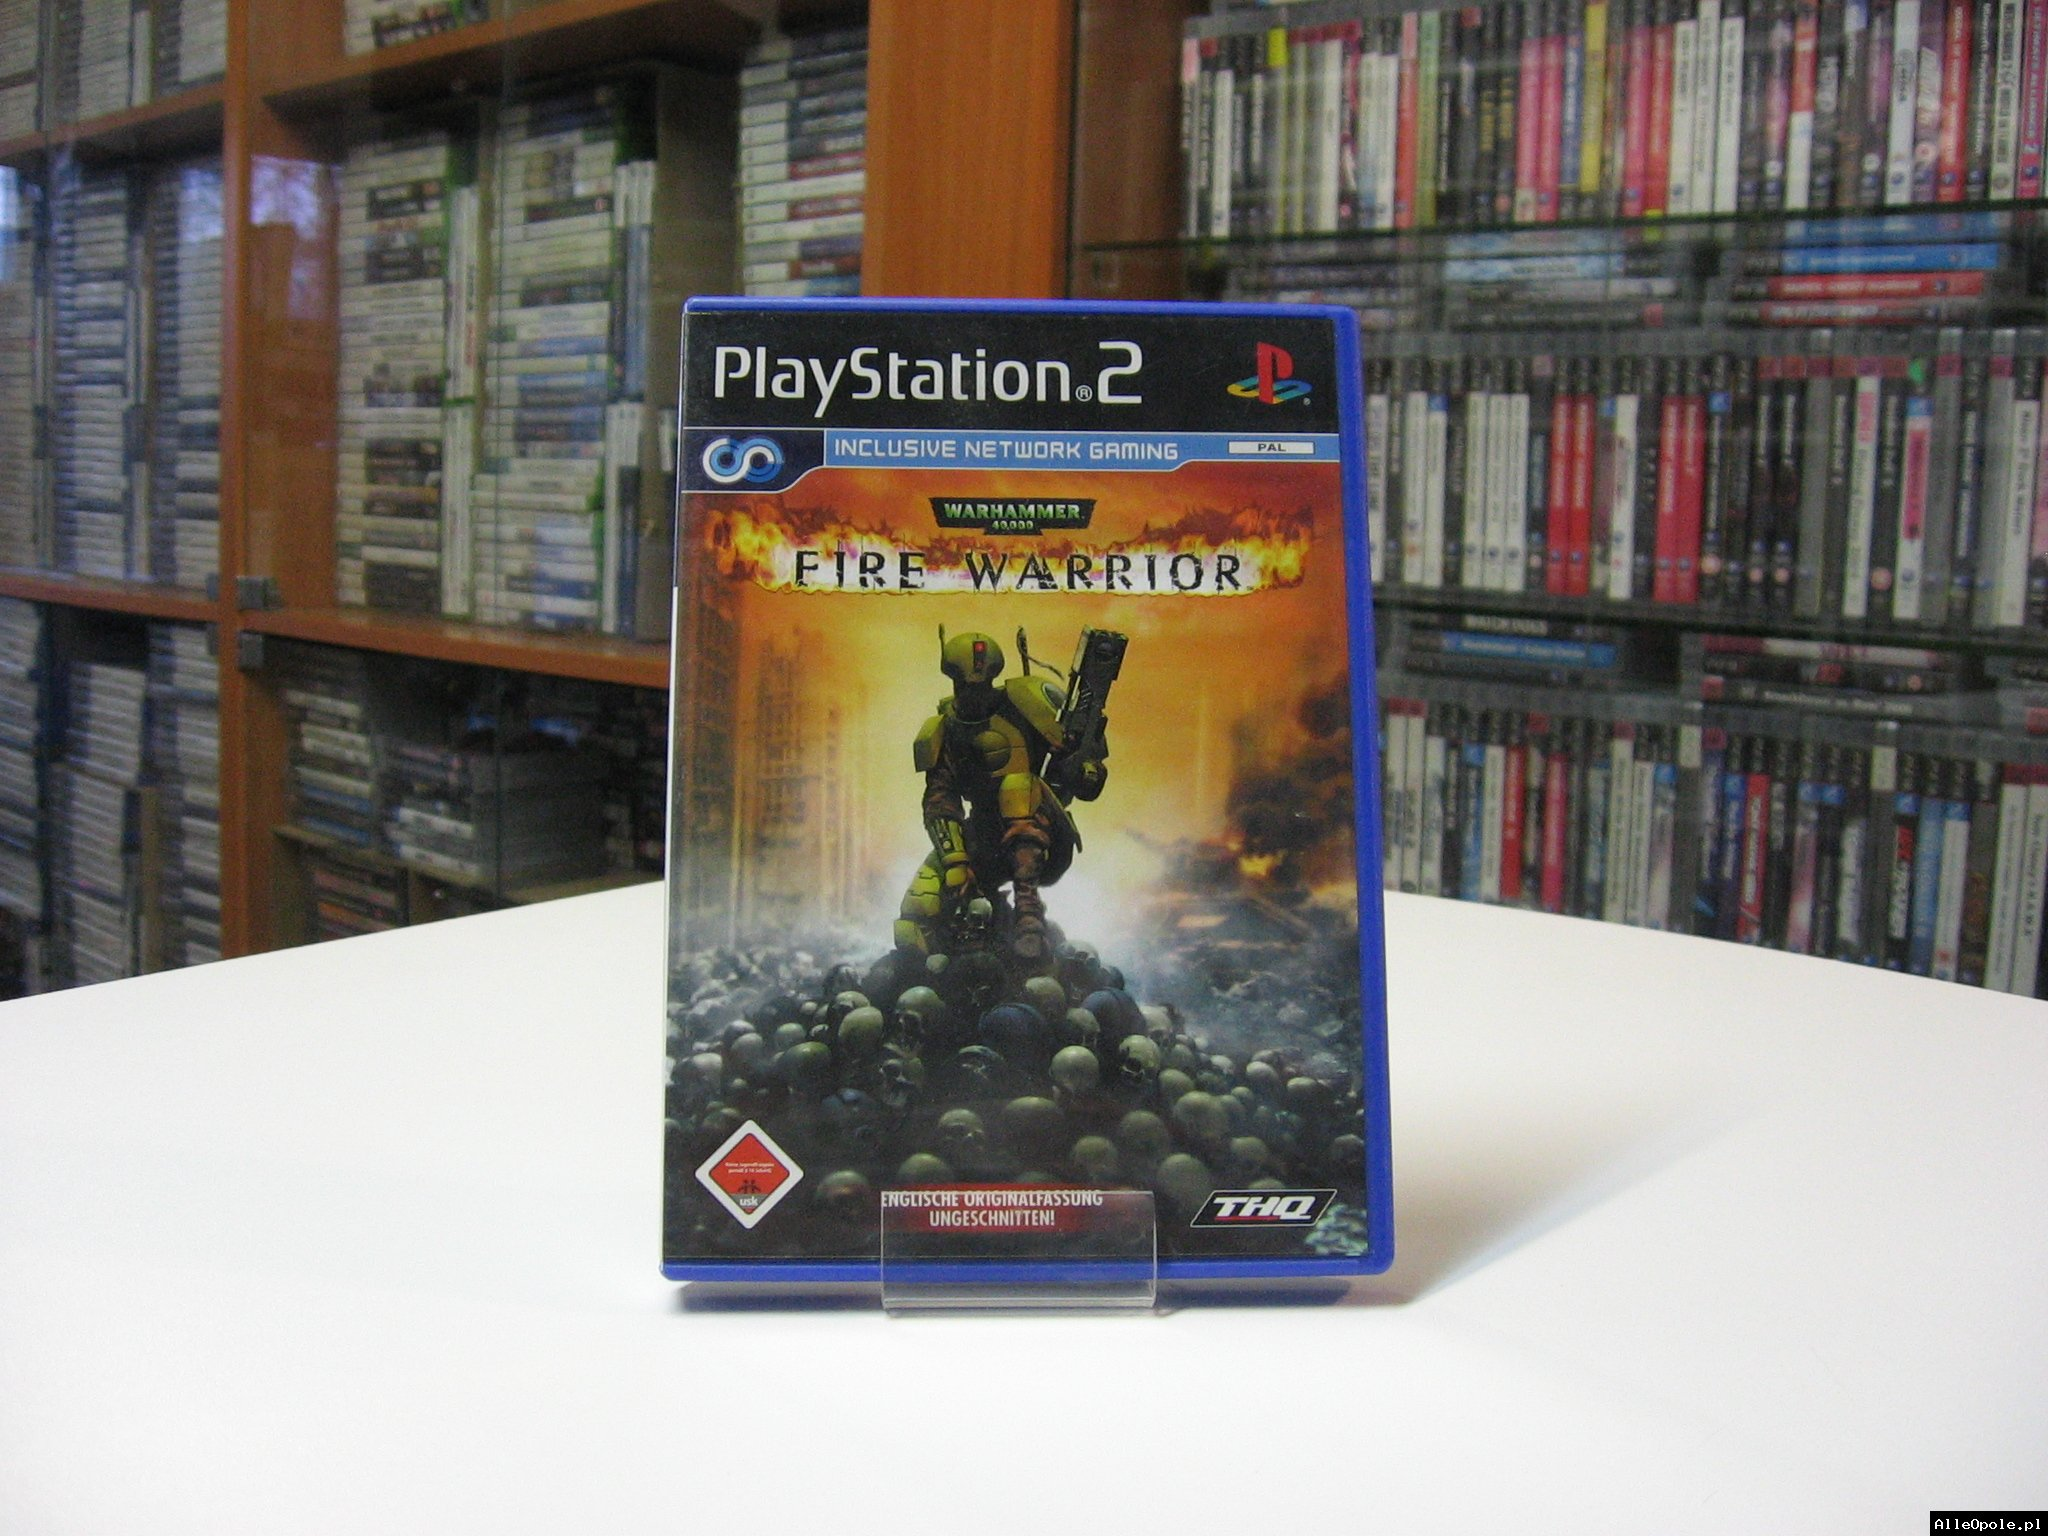 WARHAMMER 40000 FIRE WARRIOR - GRA Ps2 - Opole 0558